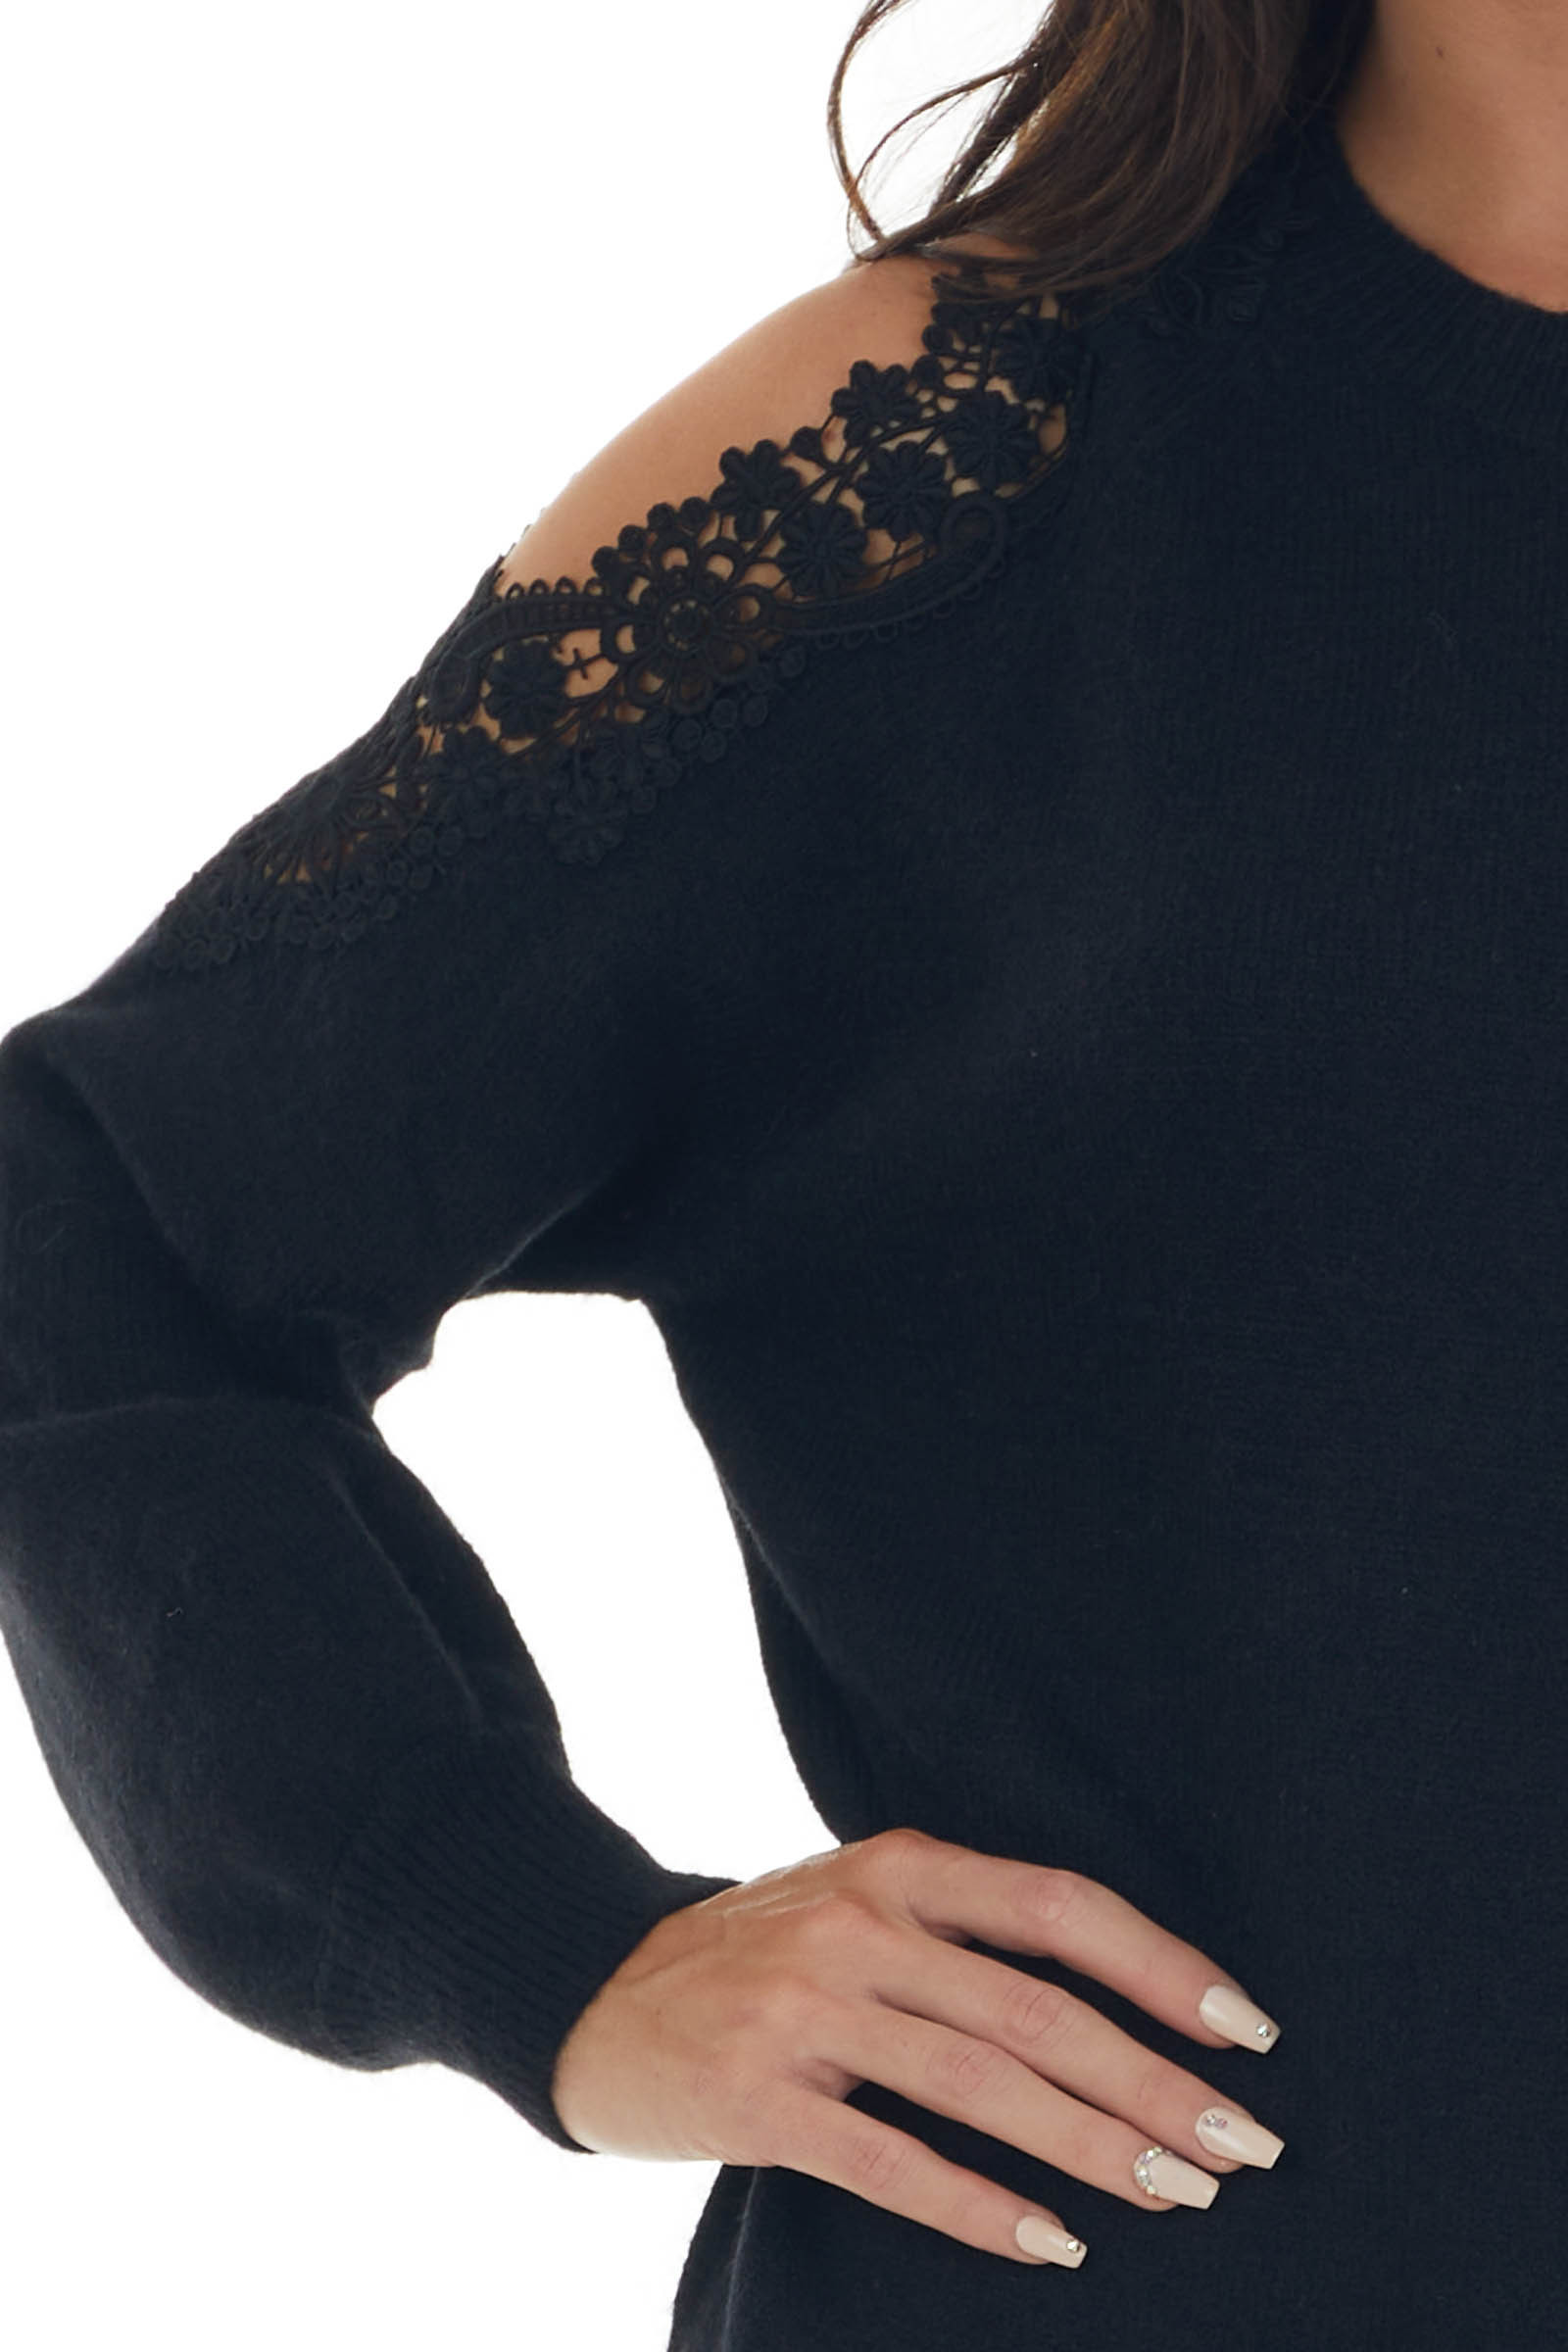 Black Cold Shoulder Sweater with Floral Lace